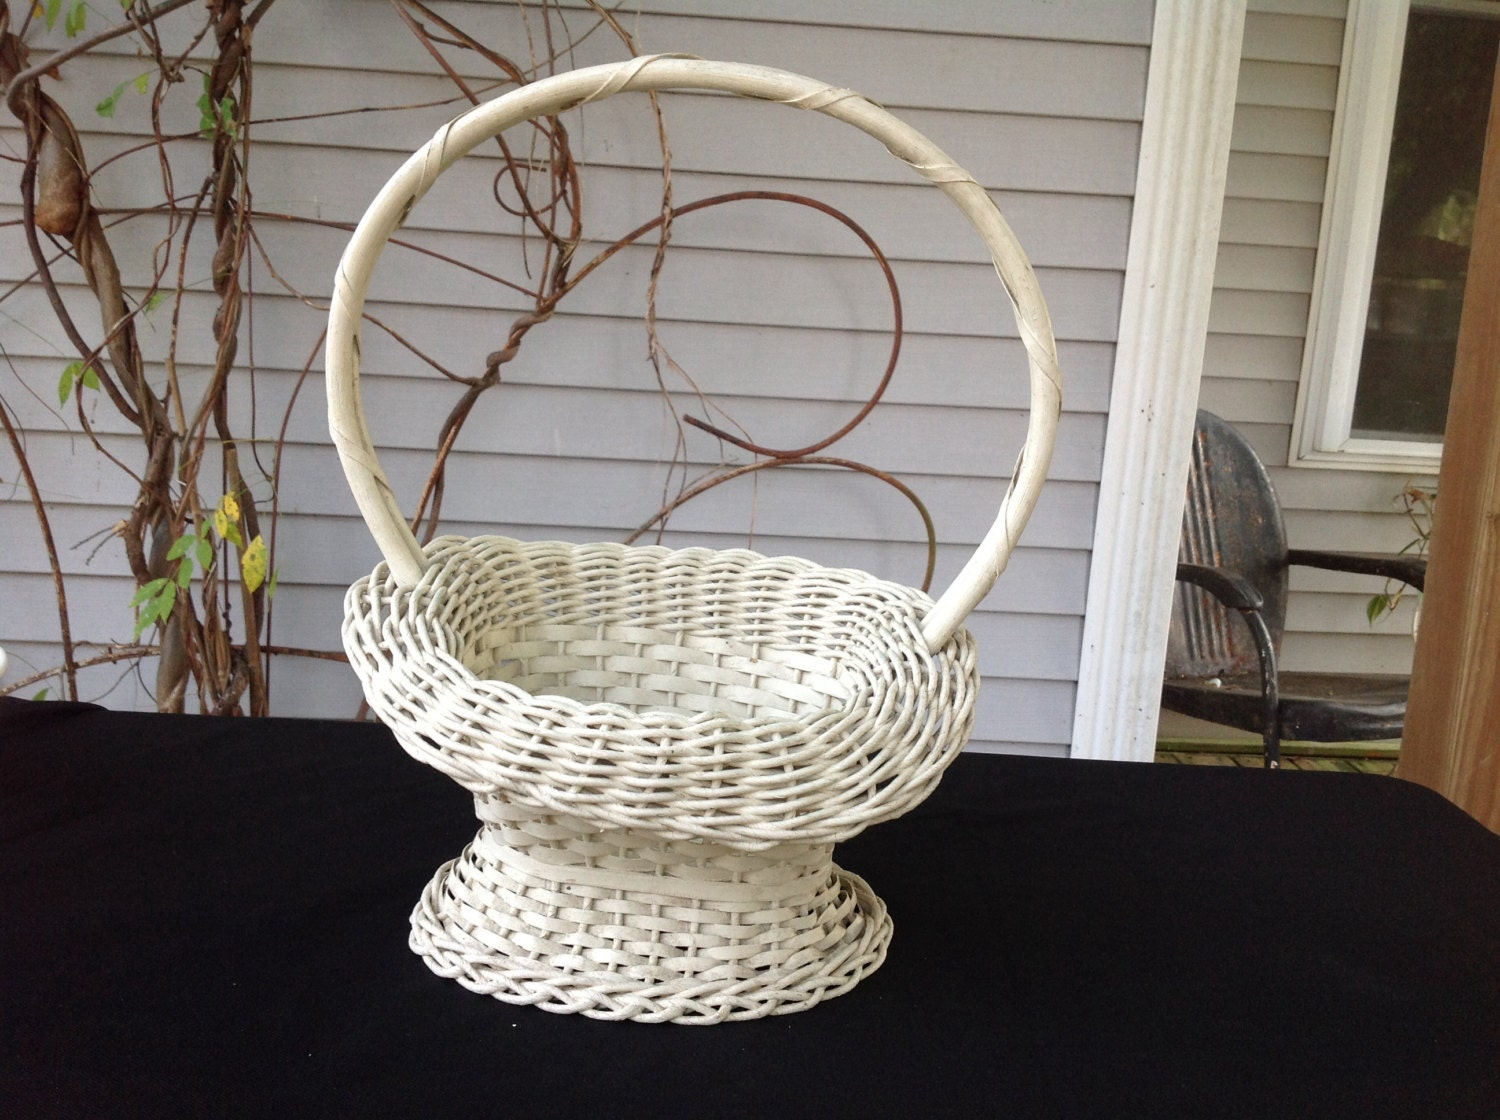 Rattan Flower Baskets : Vintage white wicker flower basket painted by